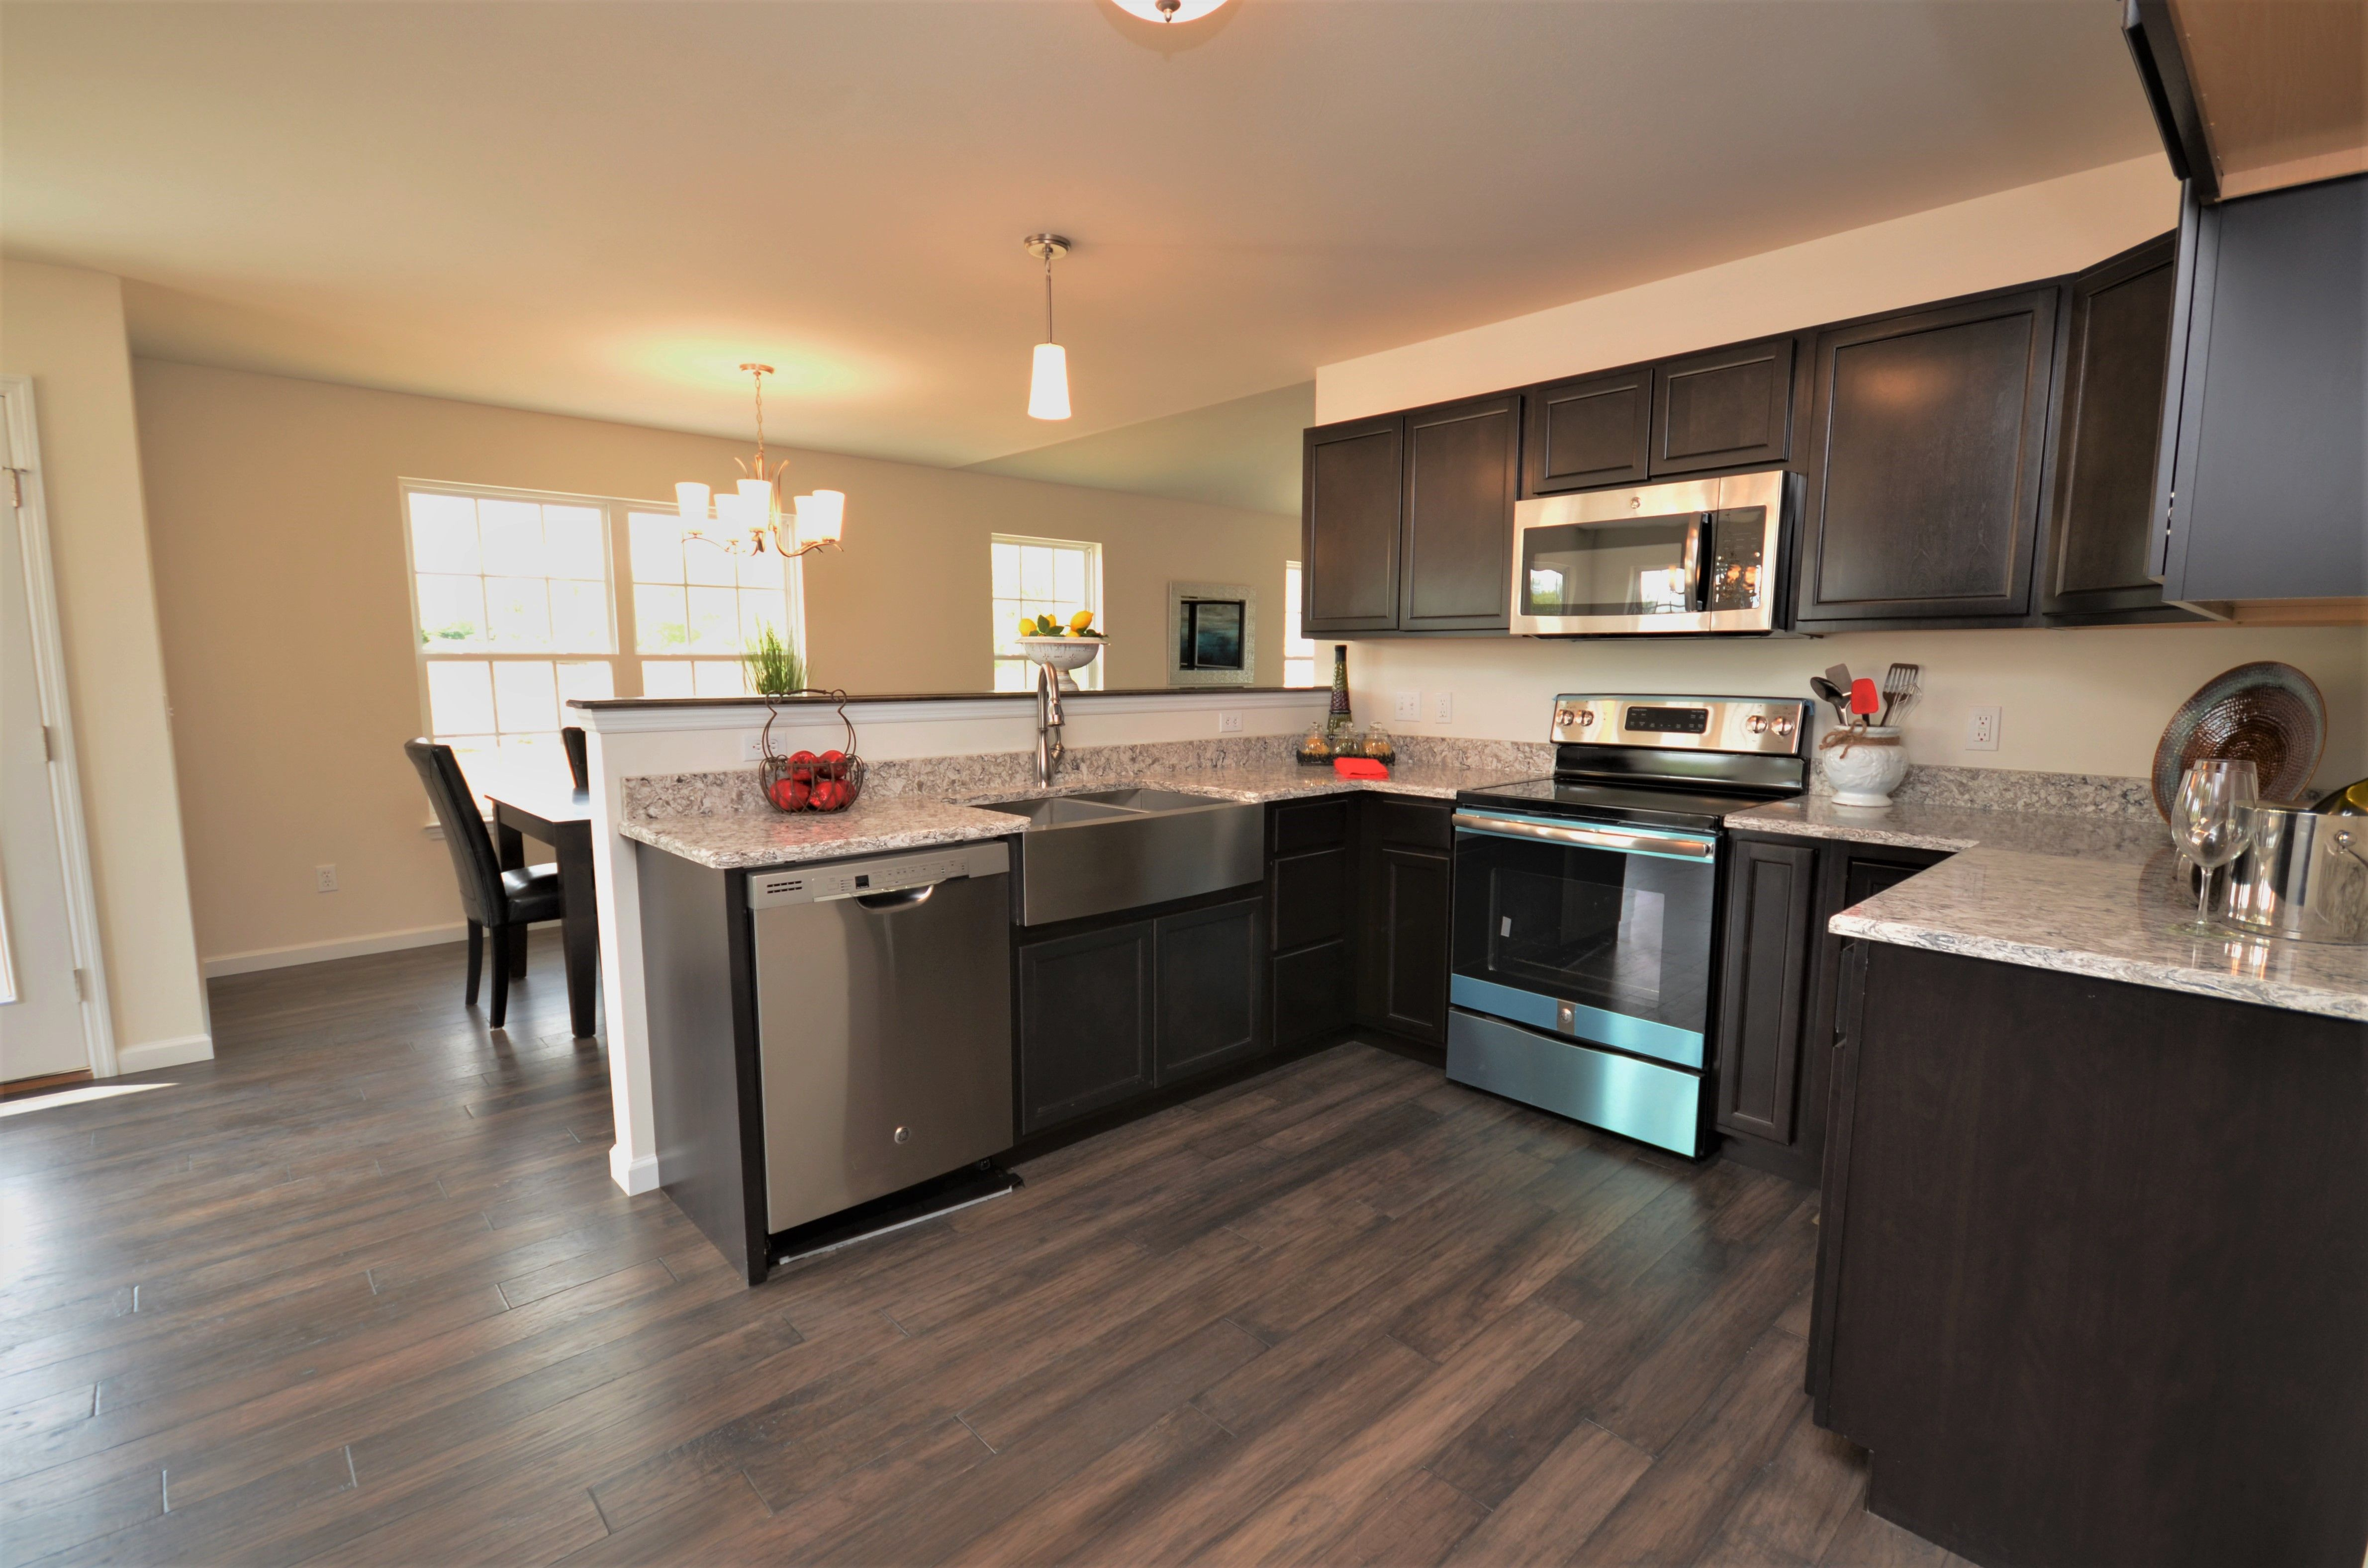 Kitchen featured in The Shiraz By Cannon Builders, Inc.  in St. Louis, MO